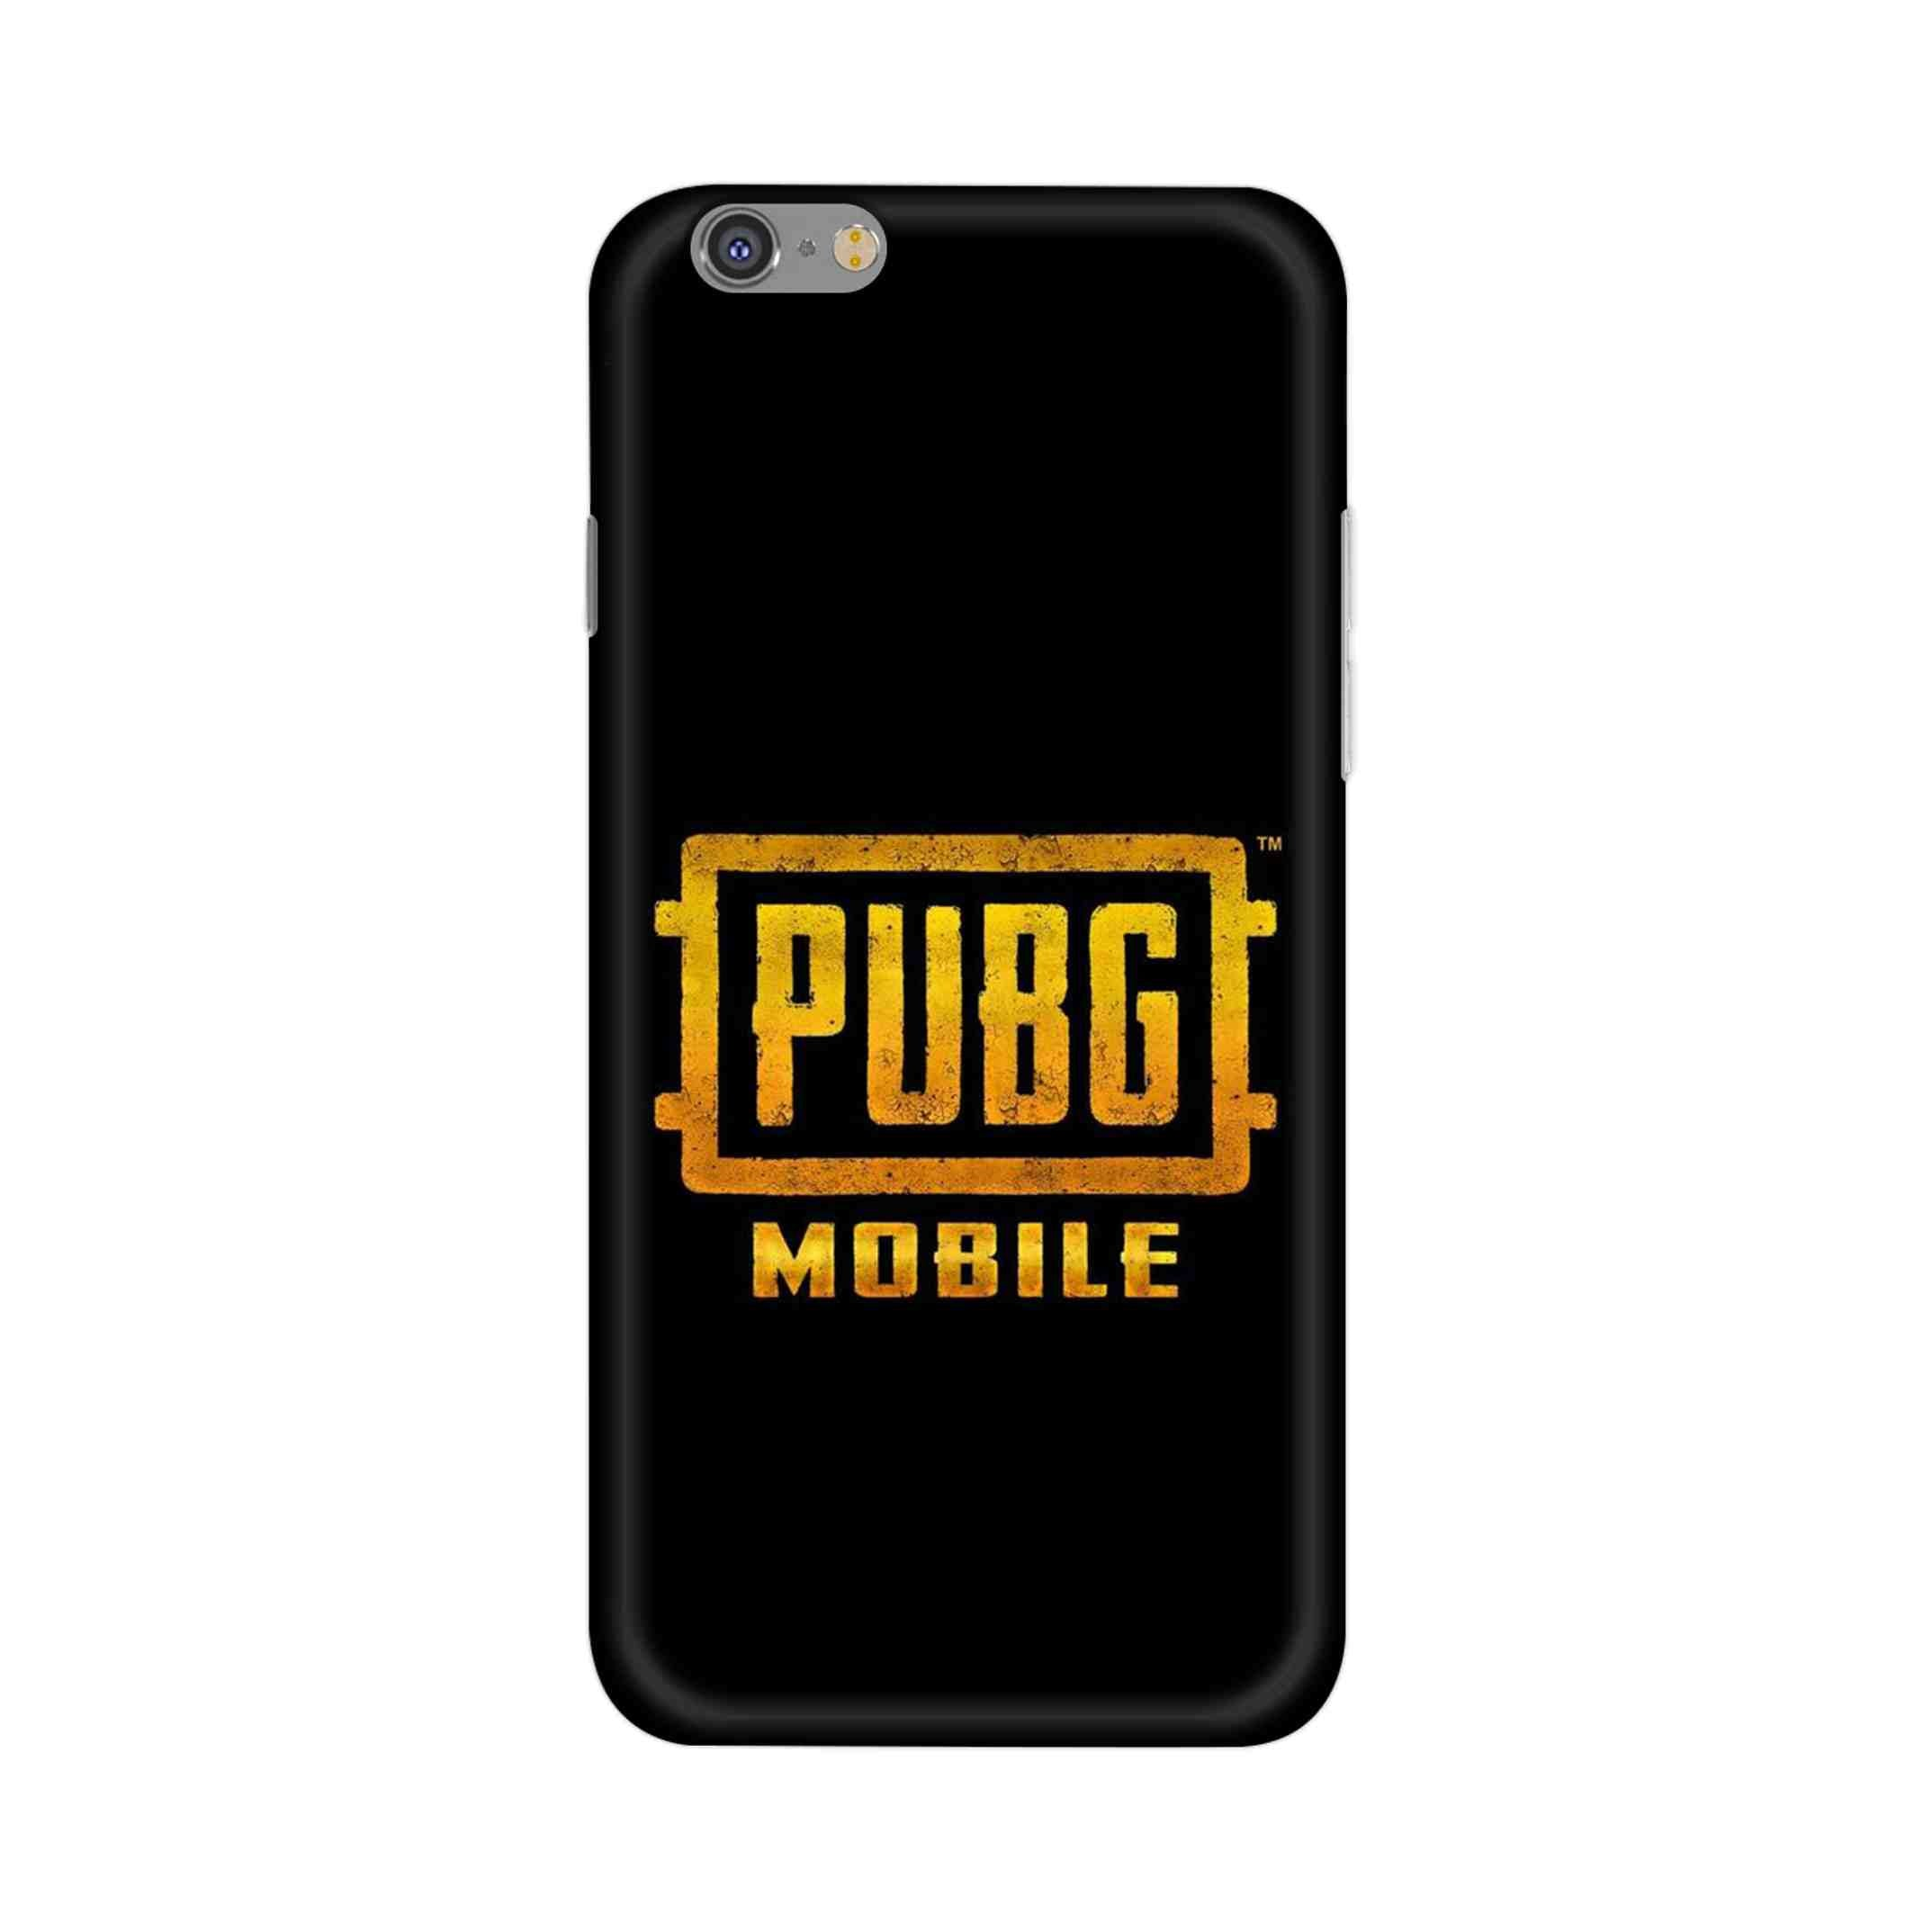 new styles 9aad0 0291b Pubg Mobile Printed Case For Apple iPhone 6 / 6s